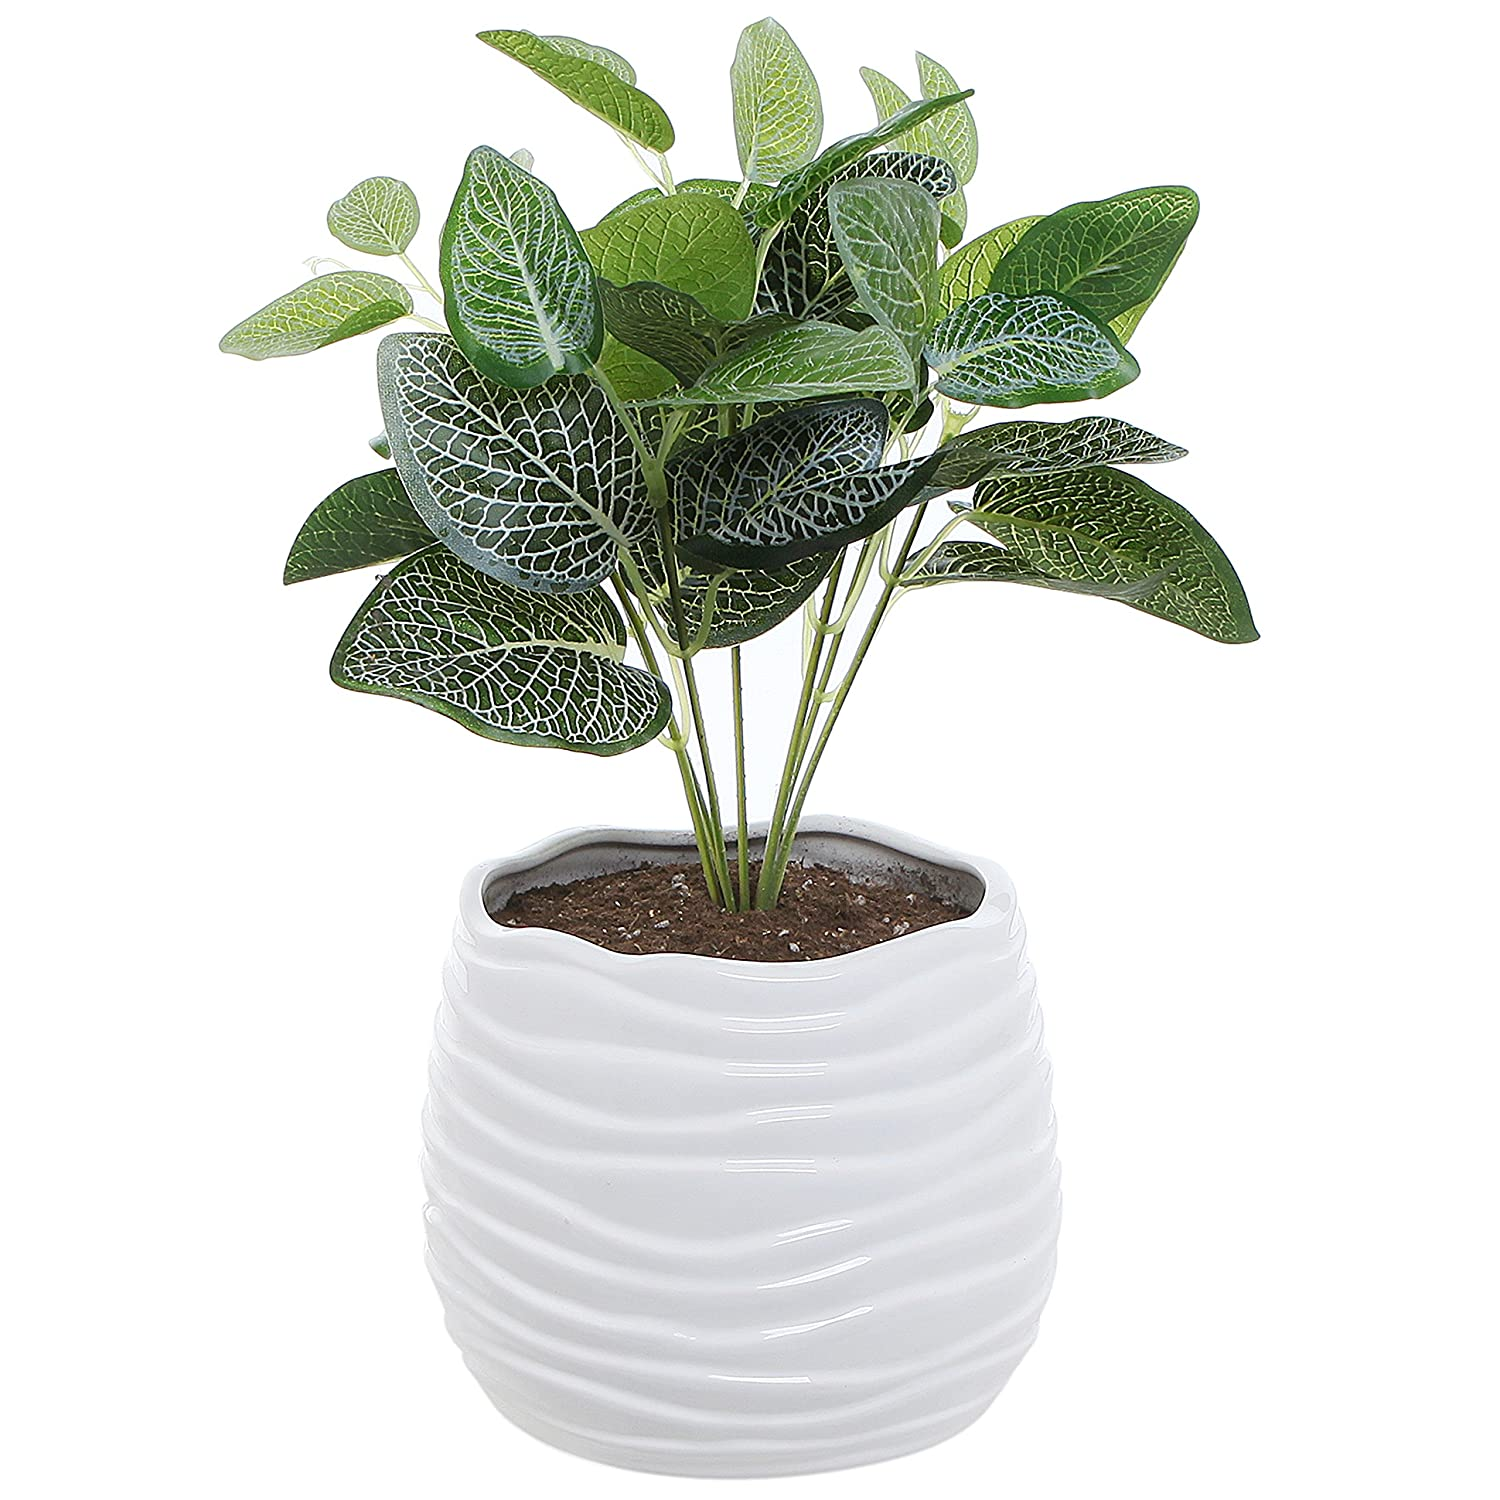 5.5 Inch White Ceramic Wavy Design Plant Flower Planter Container Pot / Decorative Centerpiece Bowl Vase